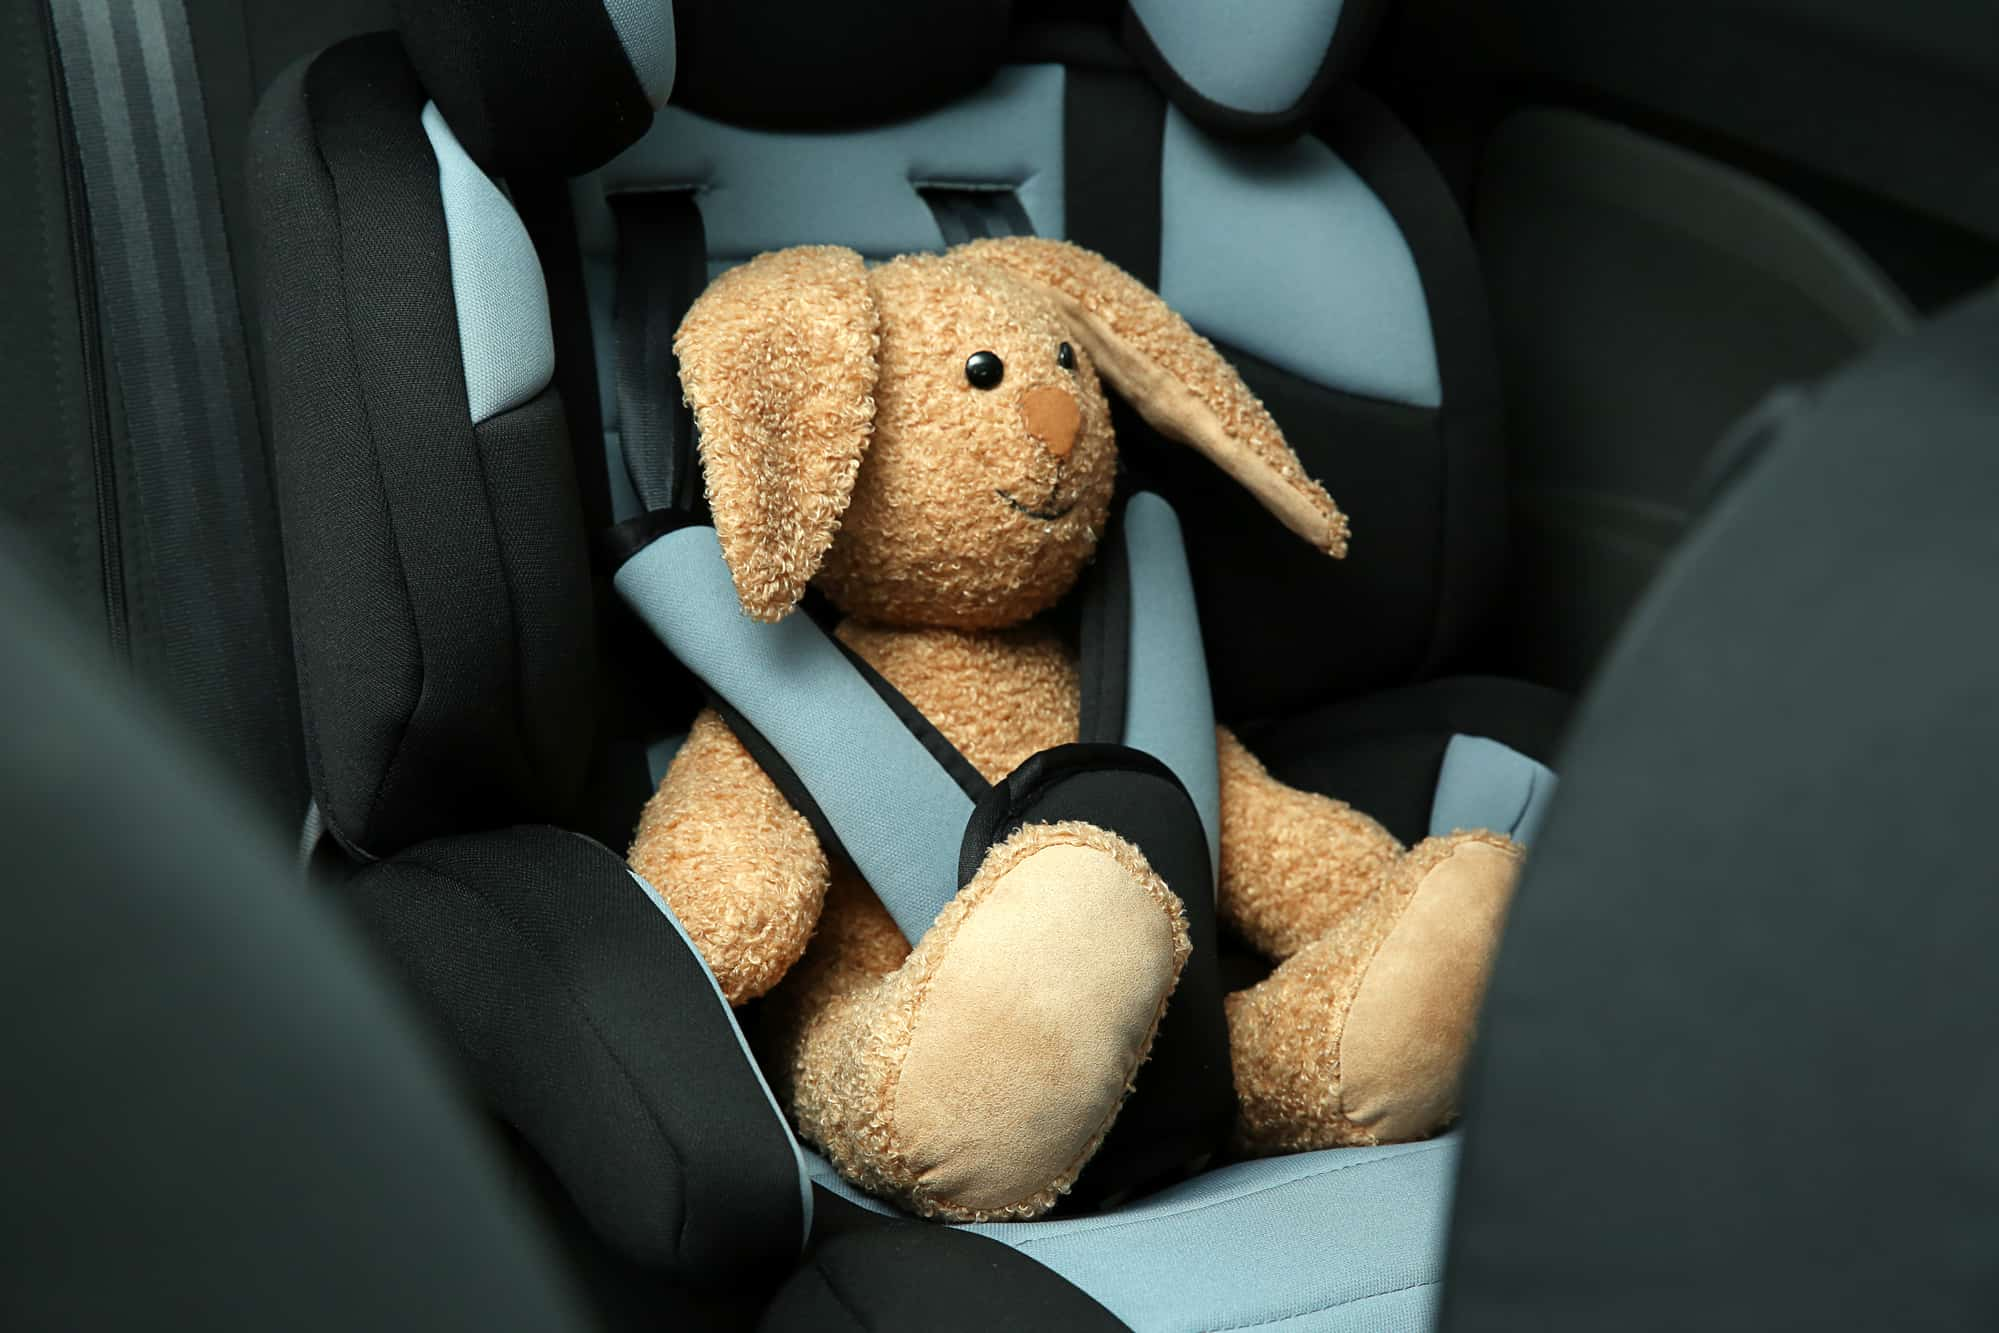 Toy bunny sitting in baby safety seat